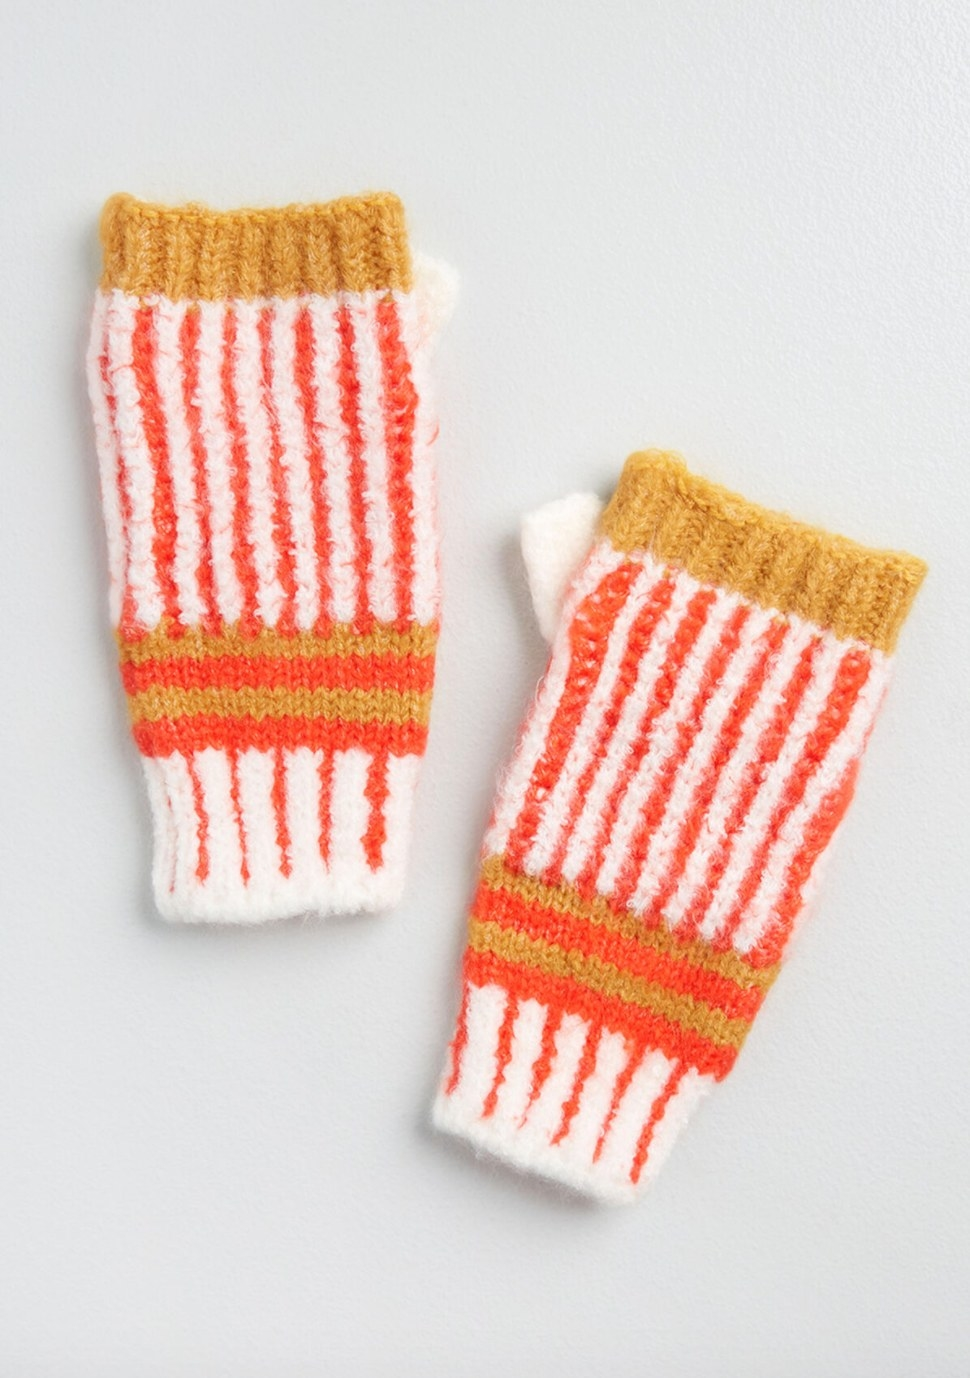 The pair of fingerless gloves in yellow, orange, and white